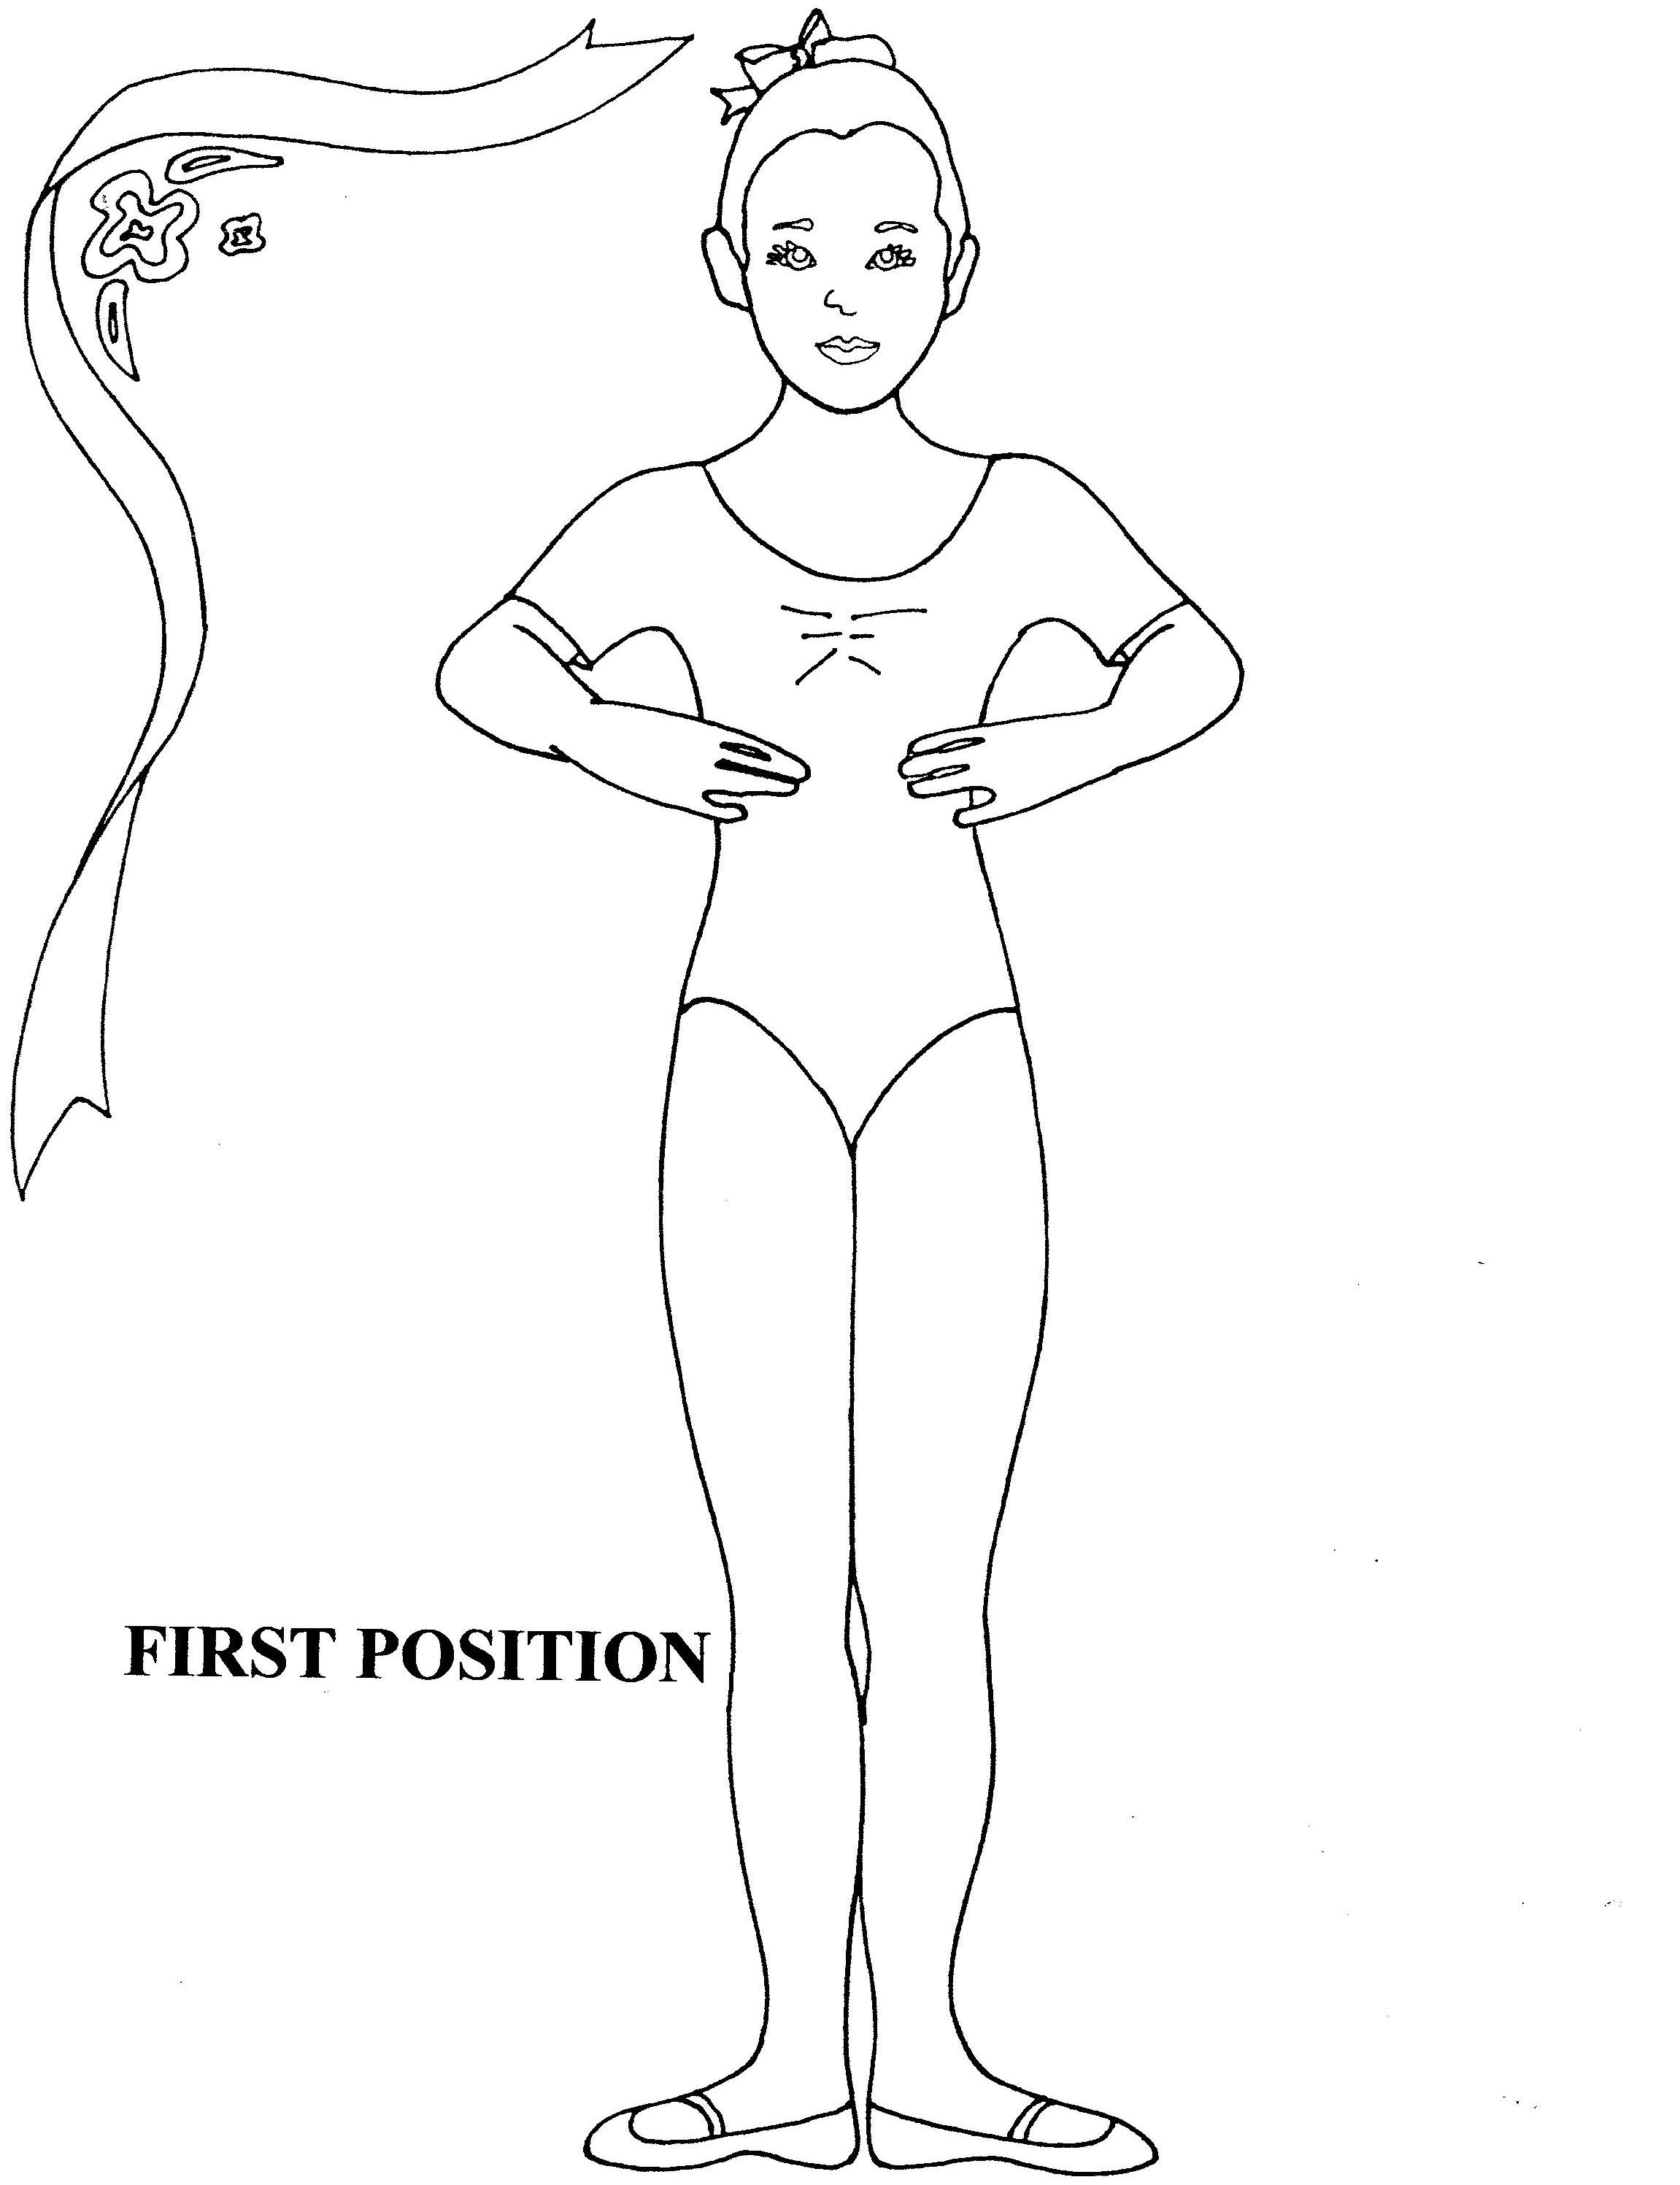 coloring pages ballet positions - photo#11